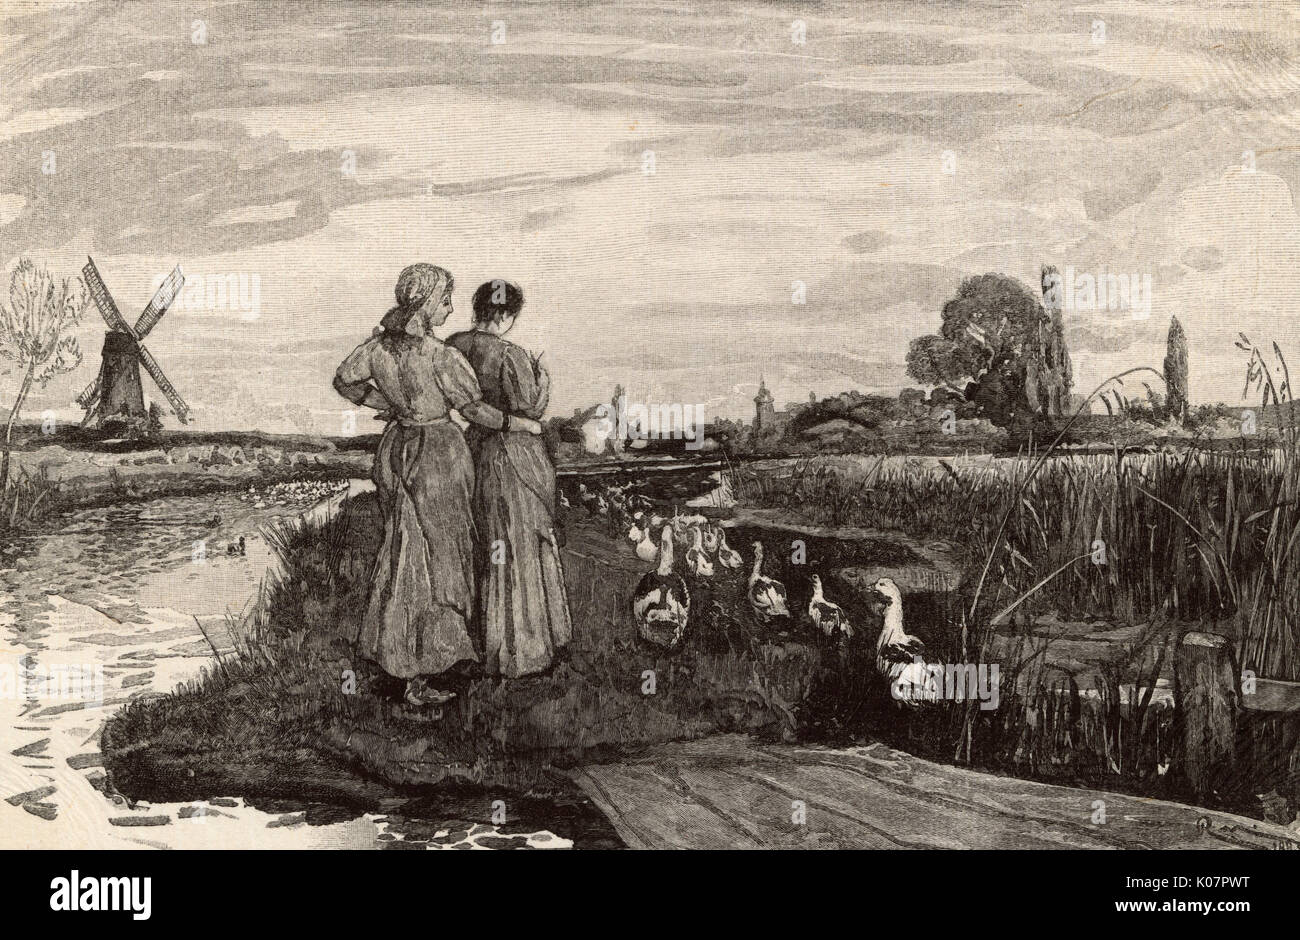 'In the Fens. Evening' by Robert Walker Macbeth ARA (1848-1910), engraved by Octave Lacour (1855-1921).     Date: 1884 - Stock Image